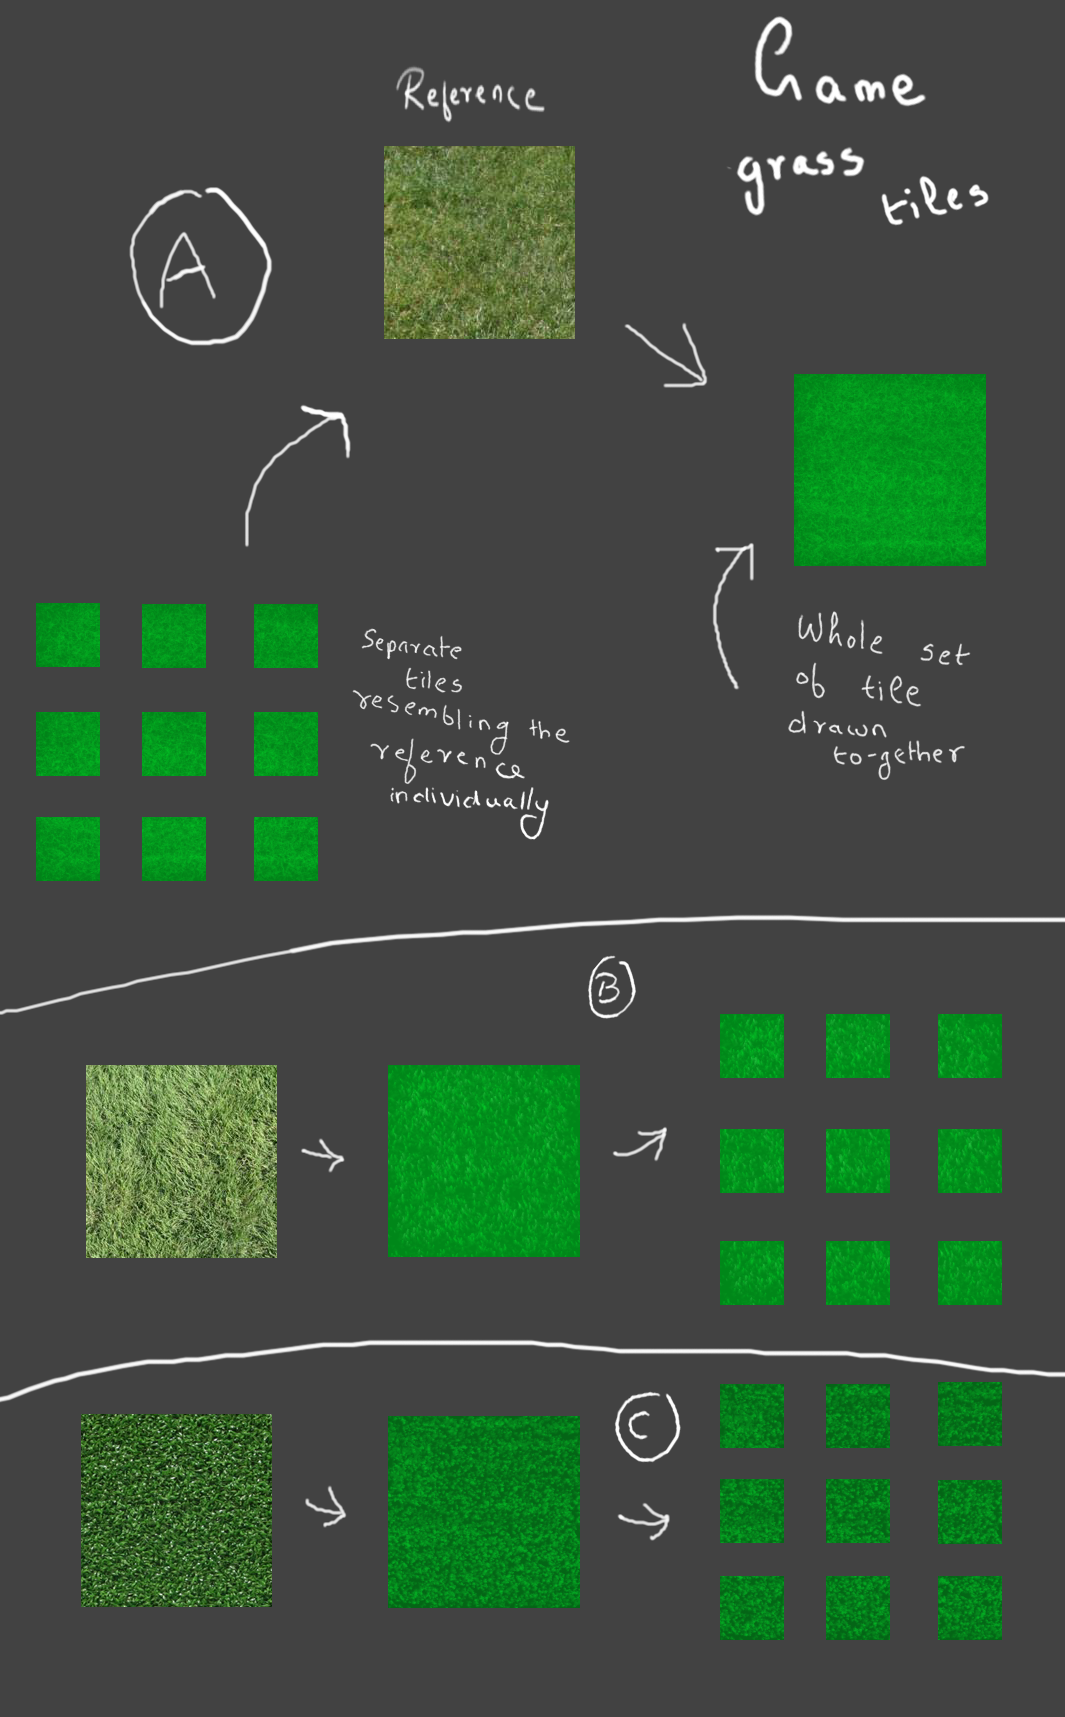 This Shows you how to take reference to make simple grass